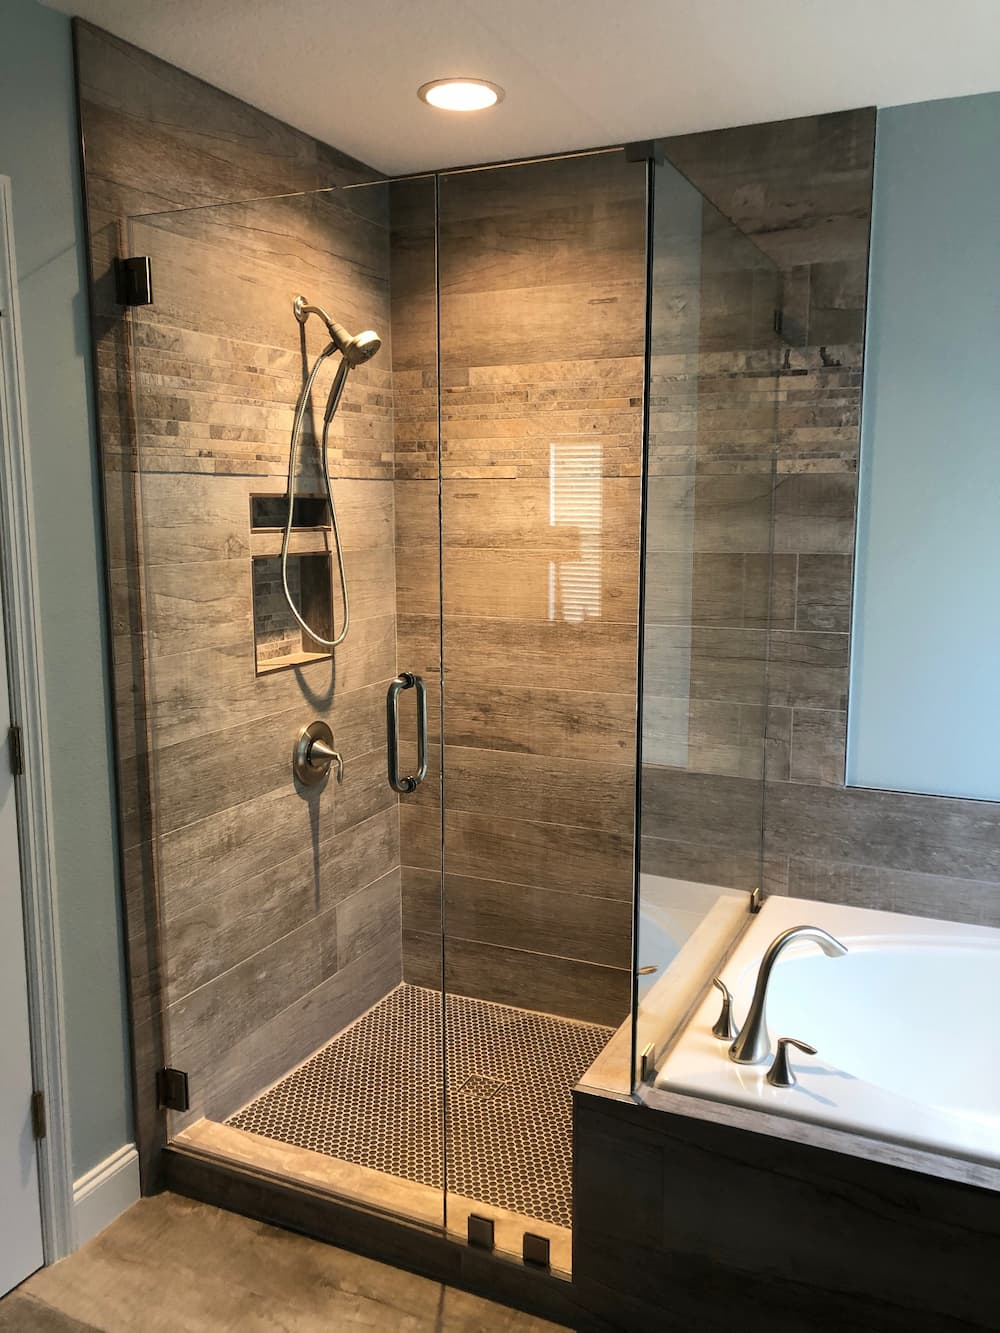 Shower Enclosure with Clamps